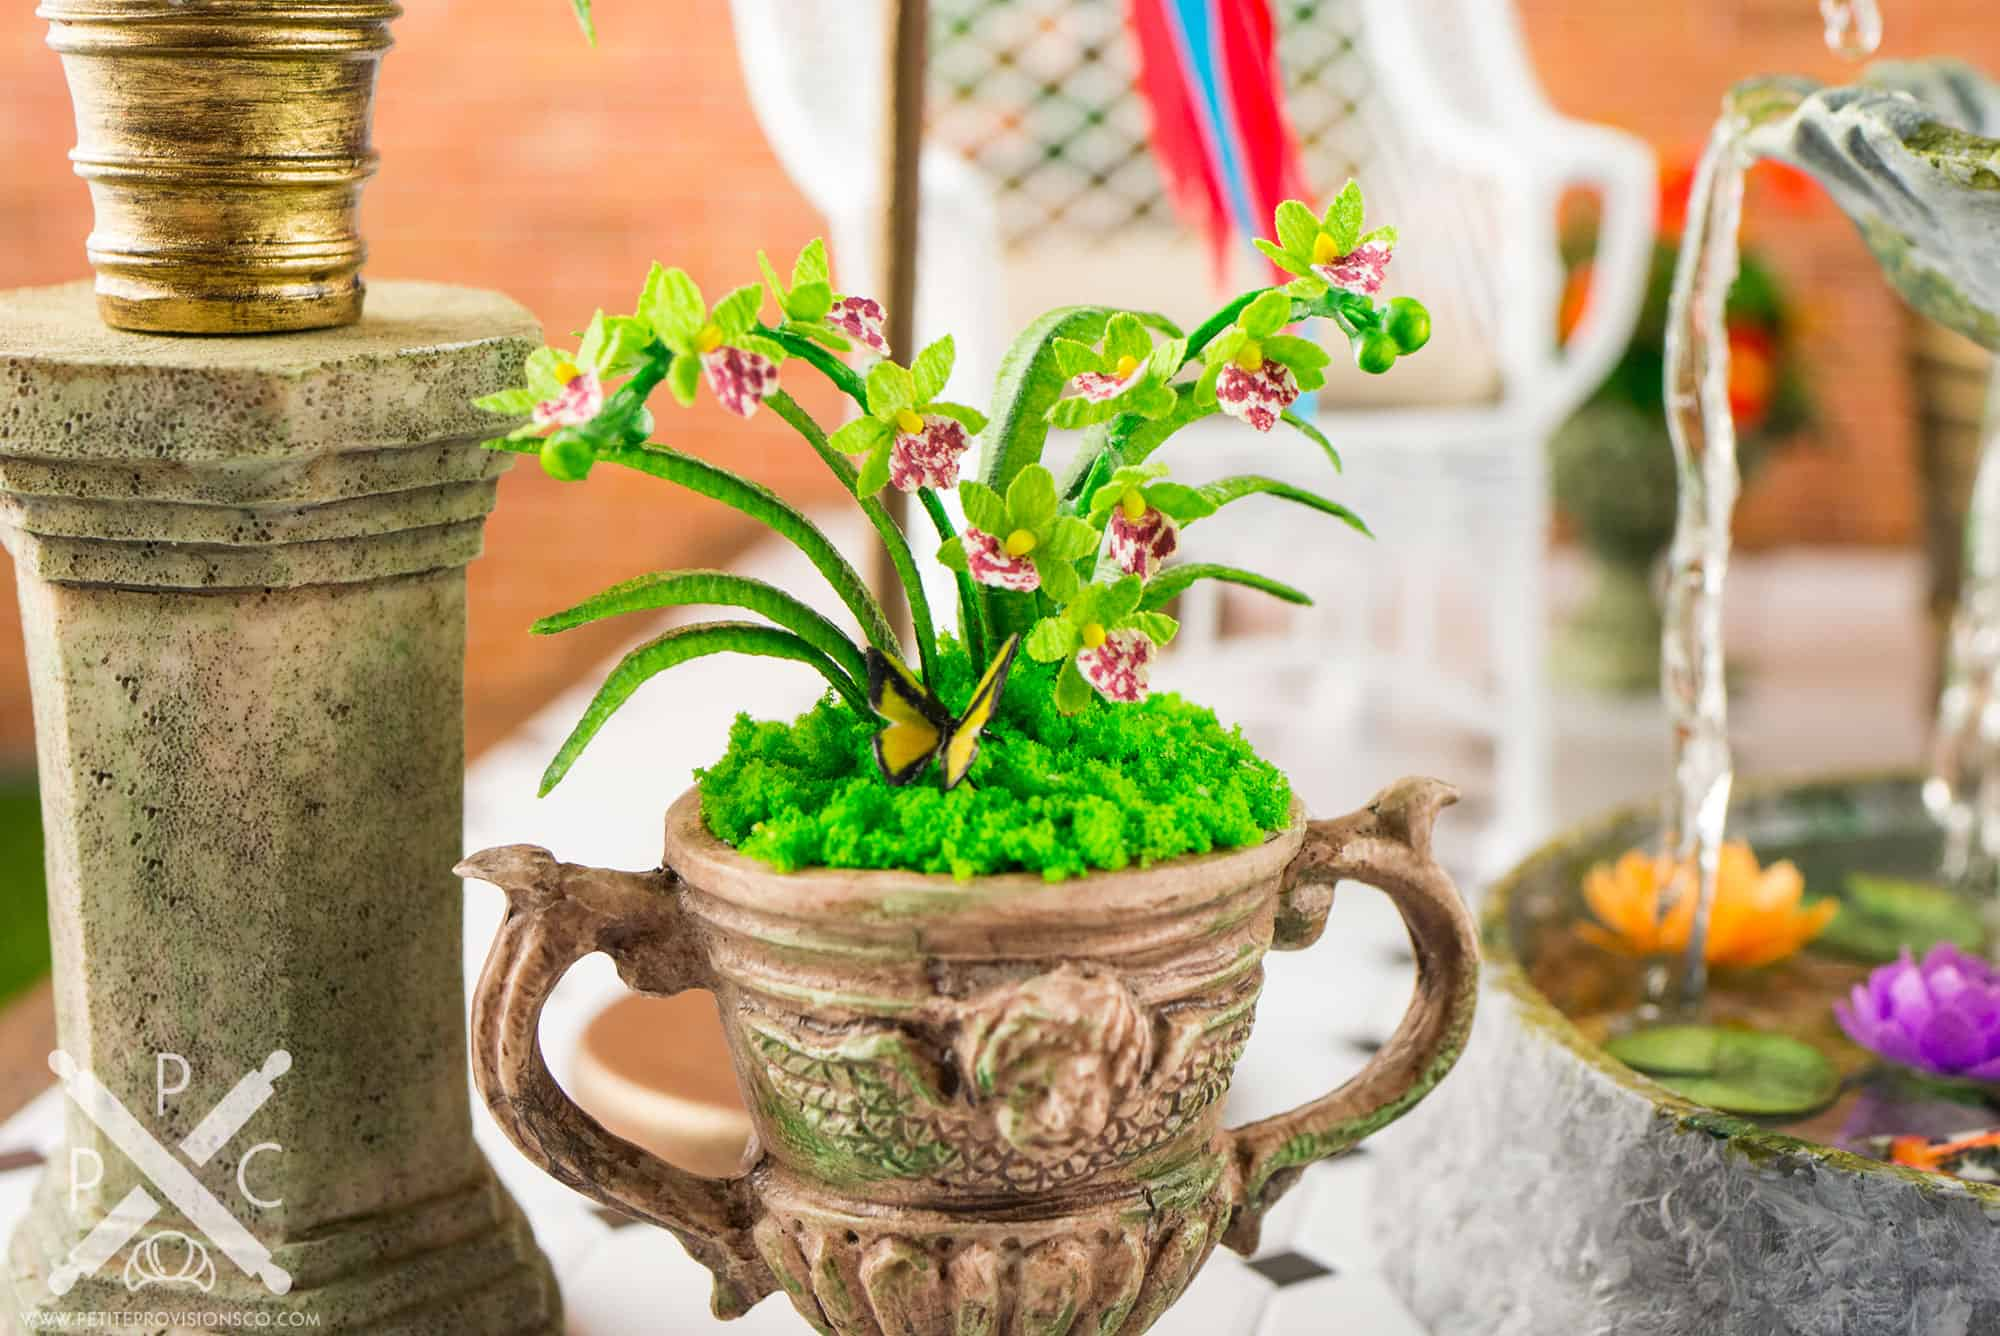 Dollhouse Miniature Conservatory by The Petite Provisions Co. - Cymbidium Orchid Arrangement and Butterfly